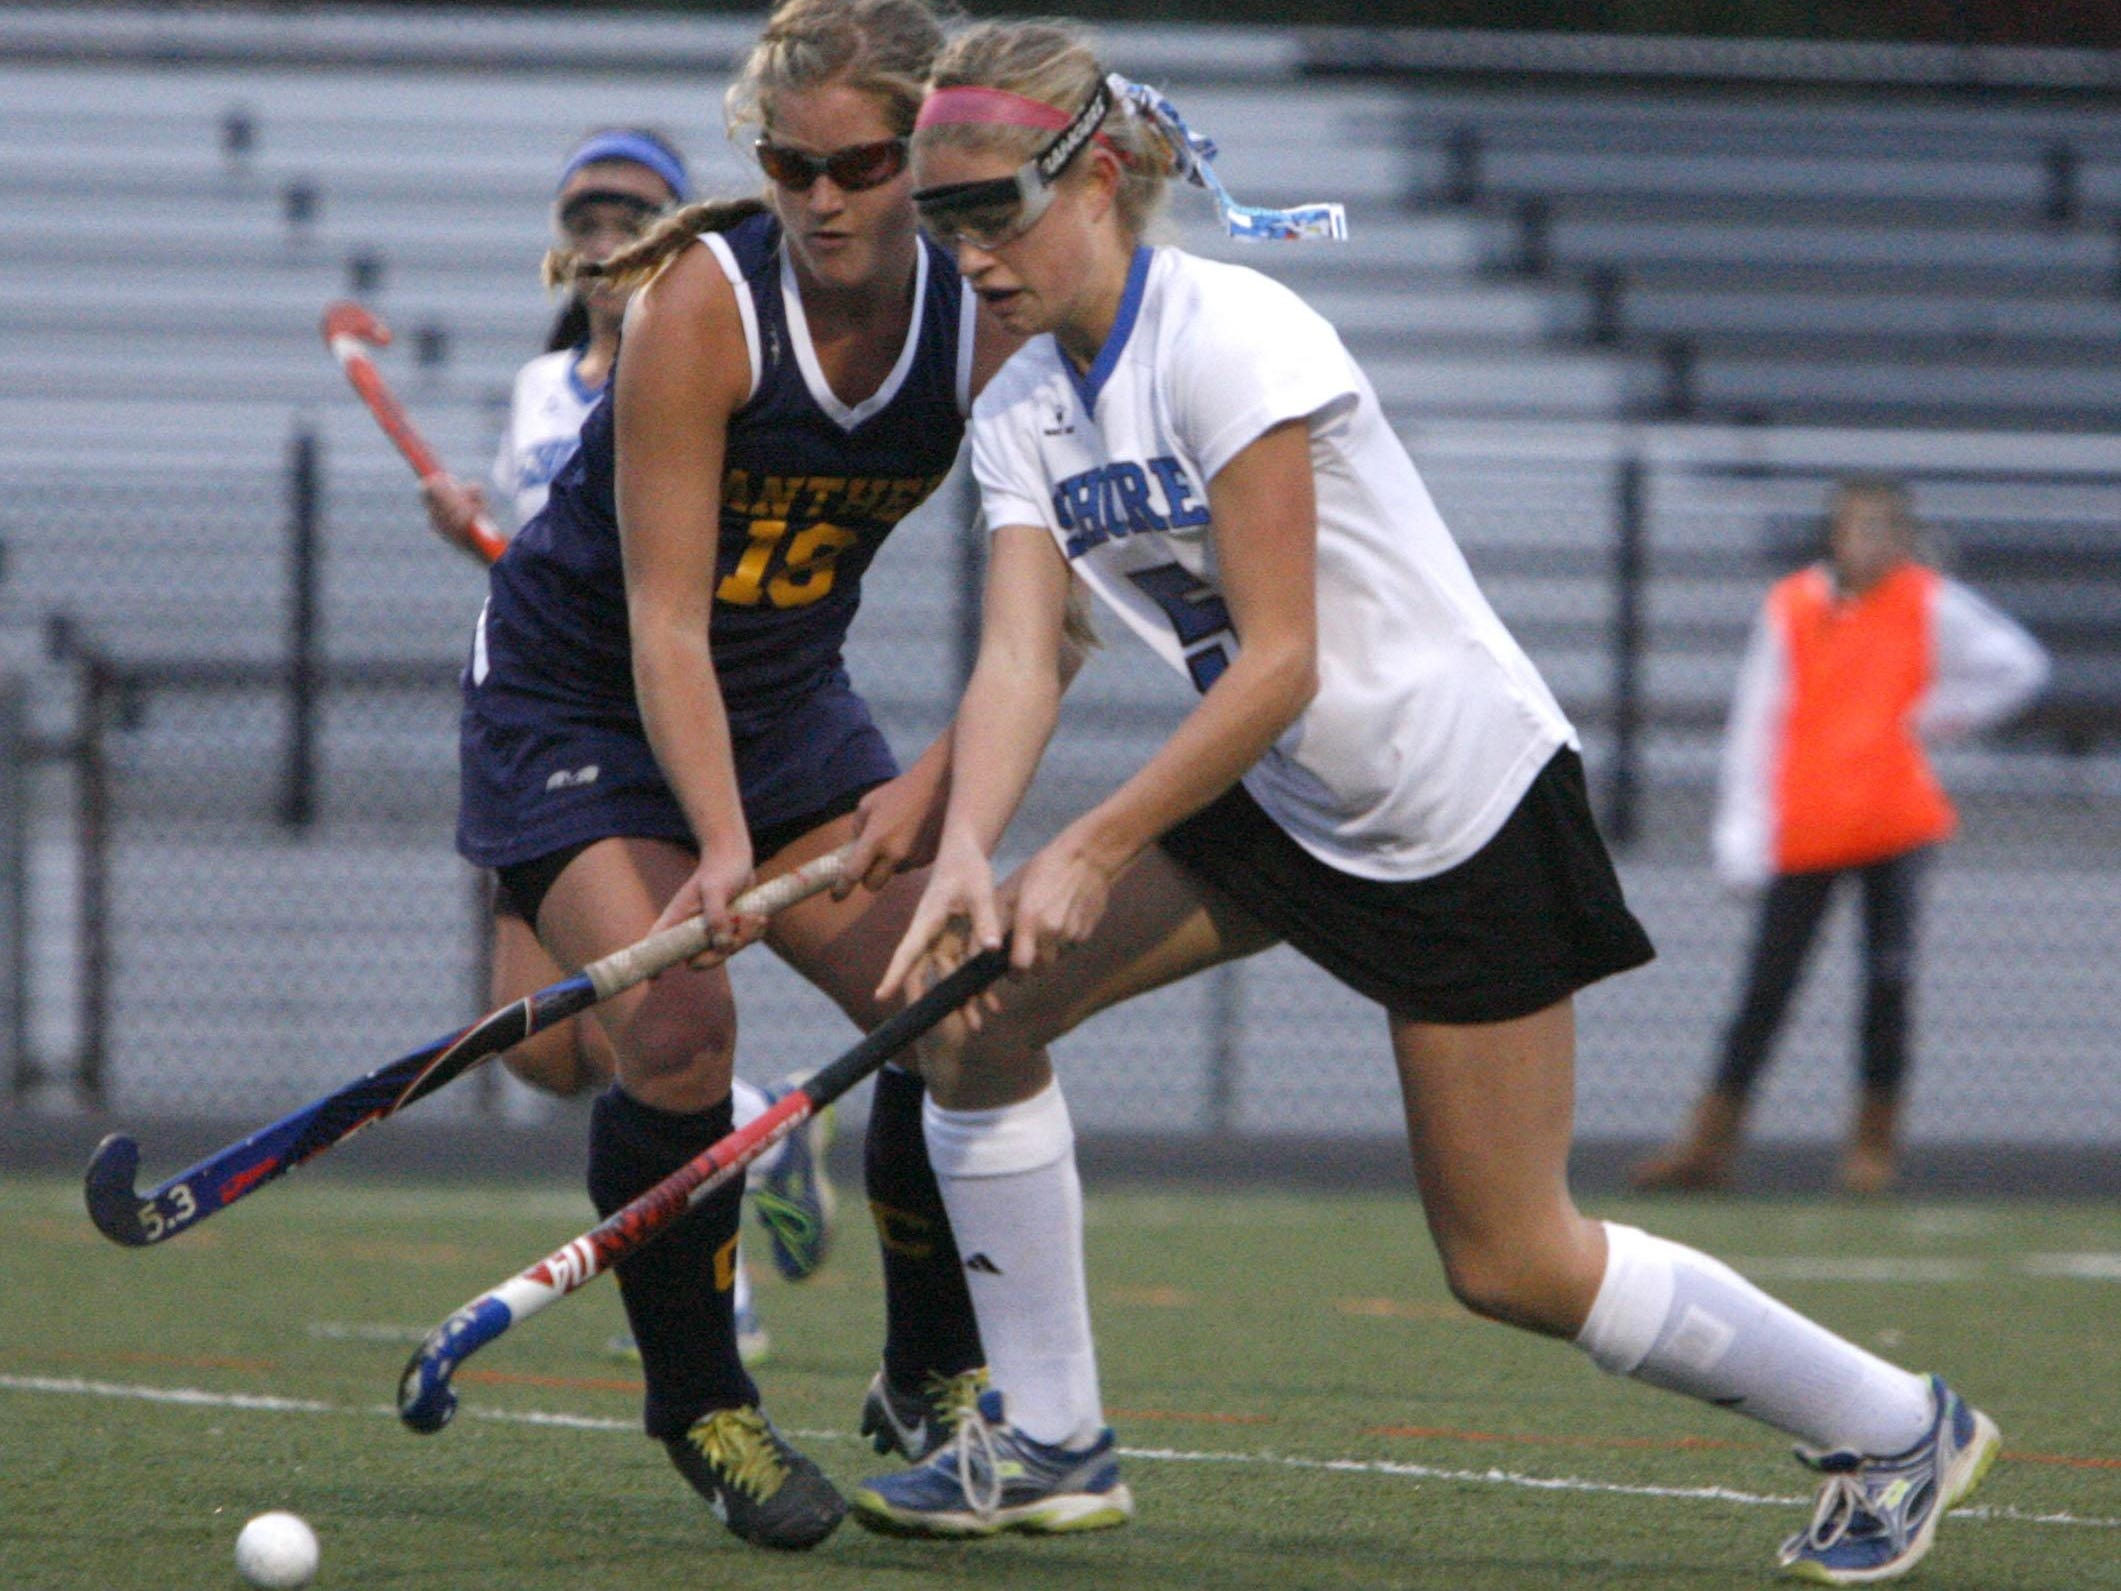 Jane Hatzell of Collingwood, left, and Shore Regional's Jessica Welch compete in the Field Hockey Group 1 State Championship game at Toms River East High School Nov. 16, 2013. Shore Regional defeated Collingswood 3-1. Photo by Vincent DiSalvio / Special to The ASBURY PARK PRESS